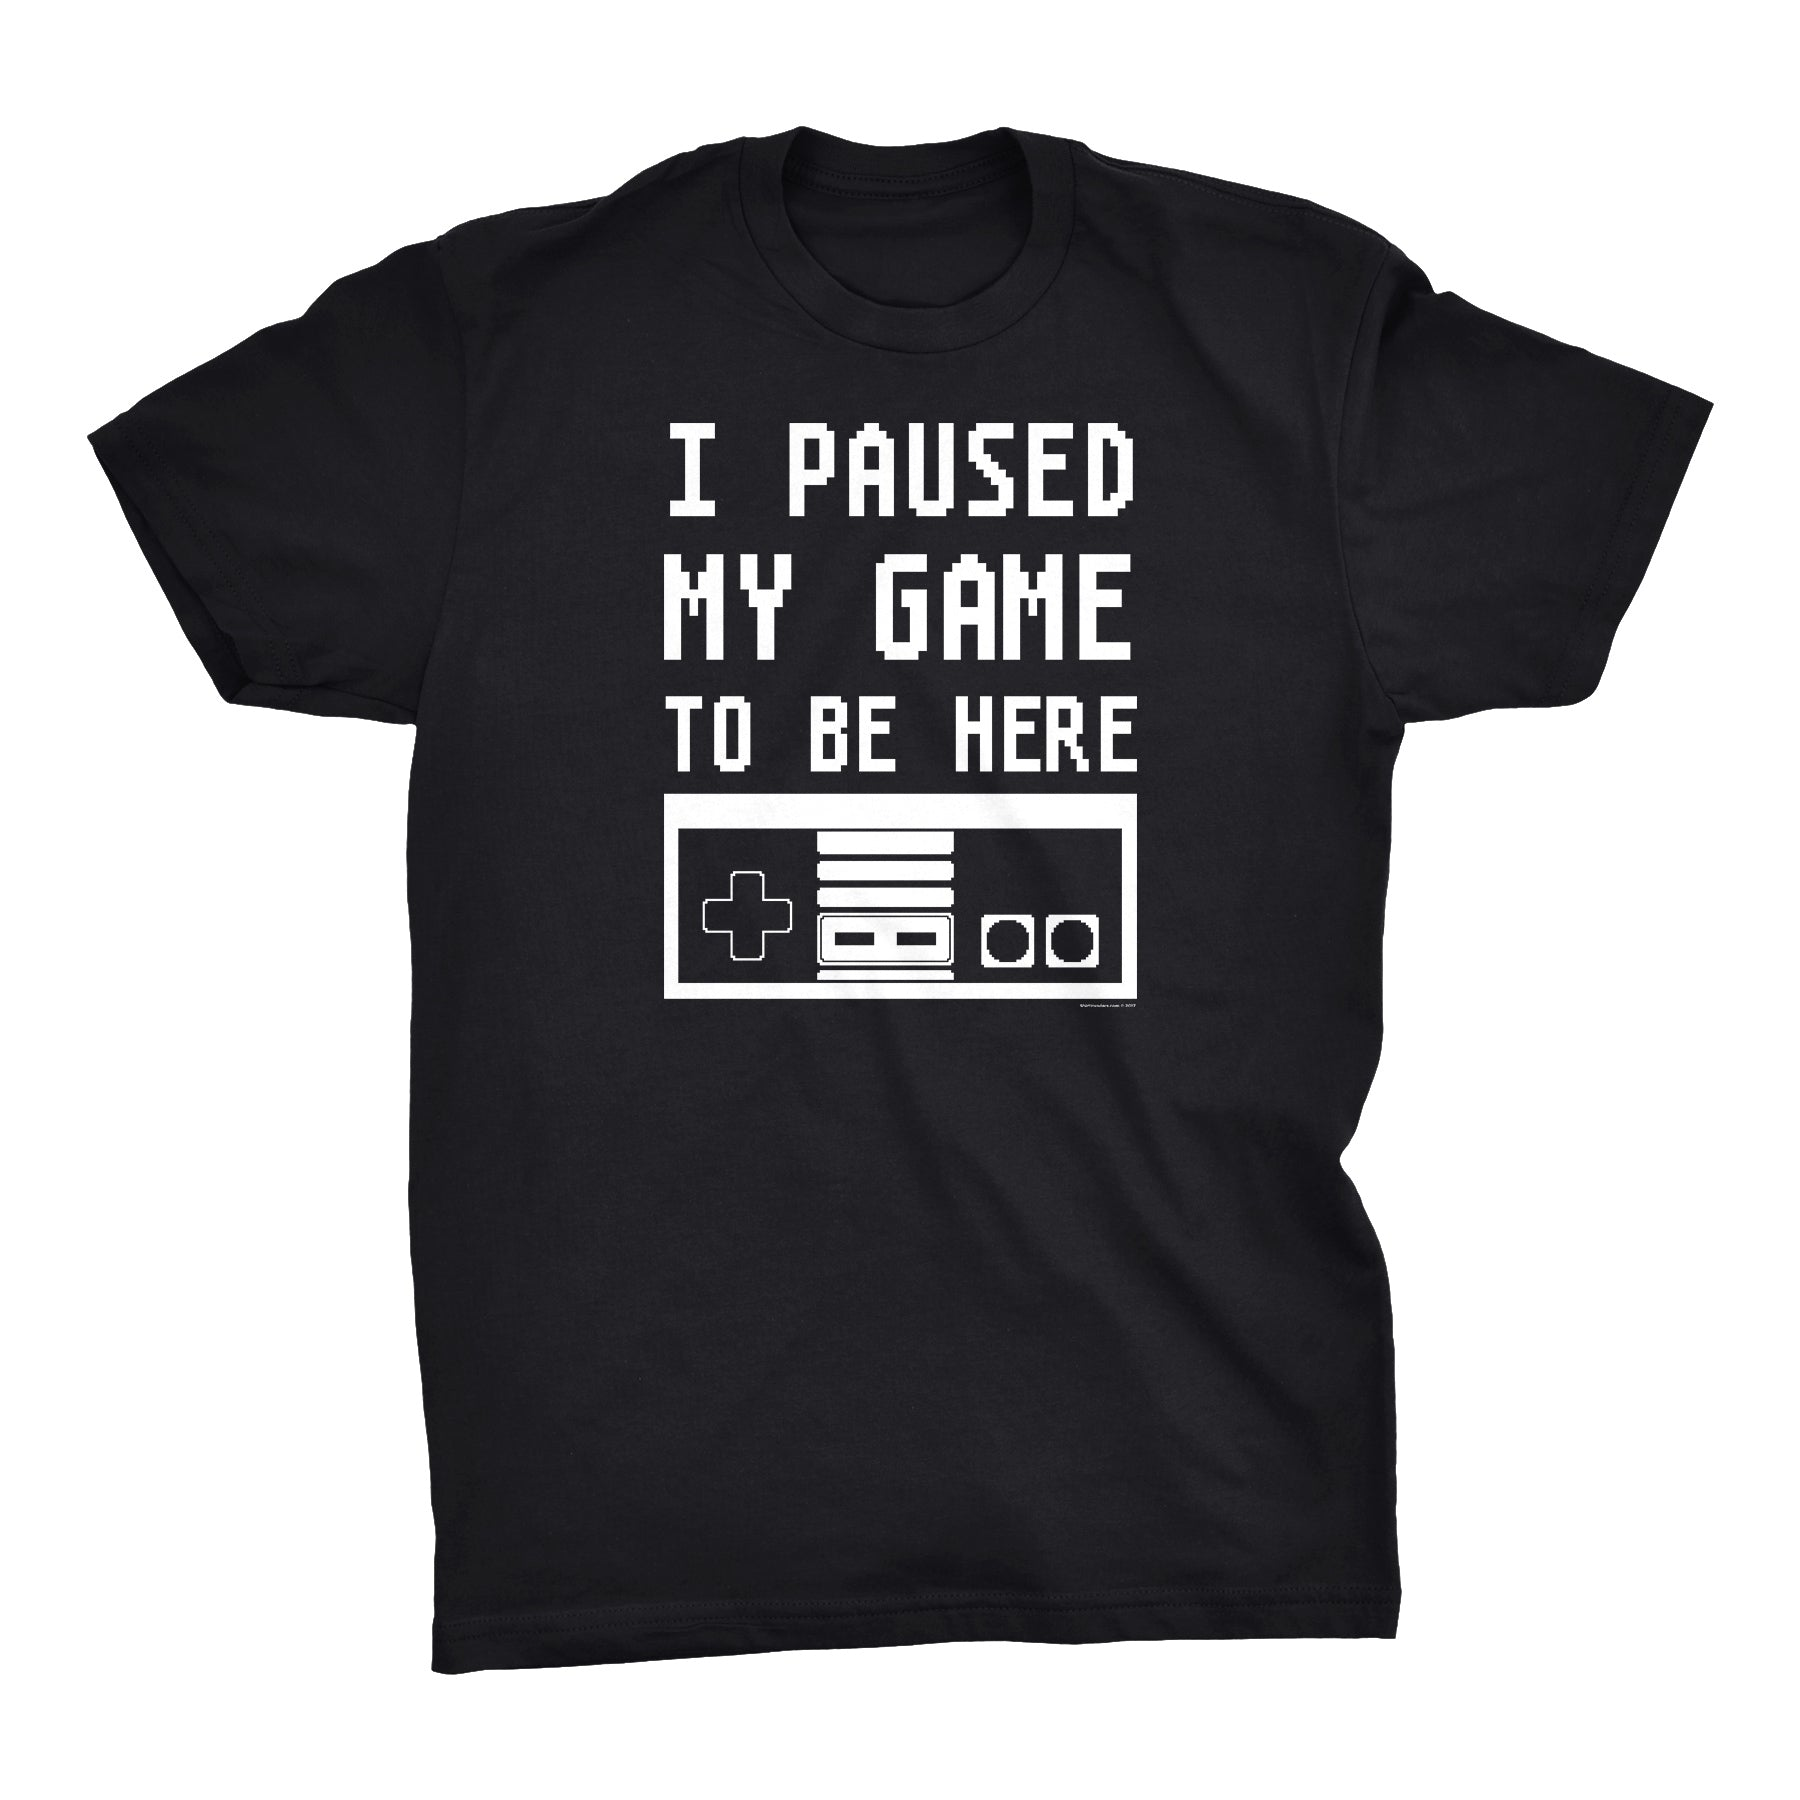 ShirtInvaders - I Paused My Game For This - 001 Funny Gamer T-shirt